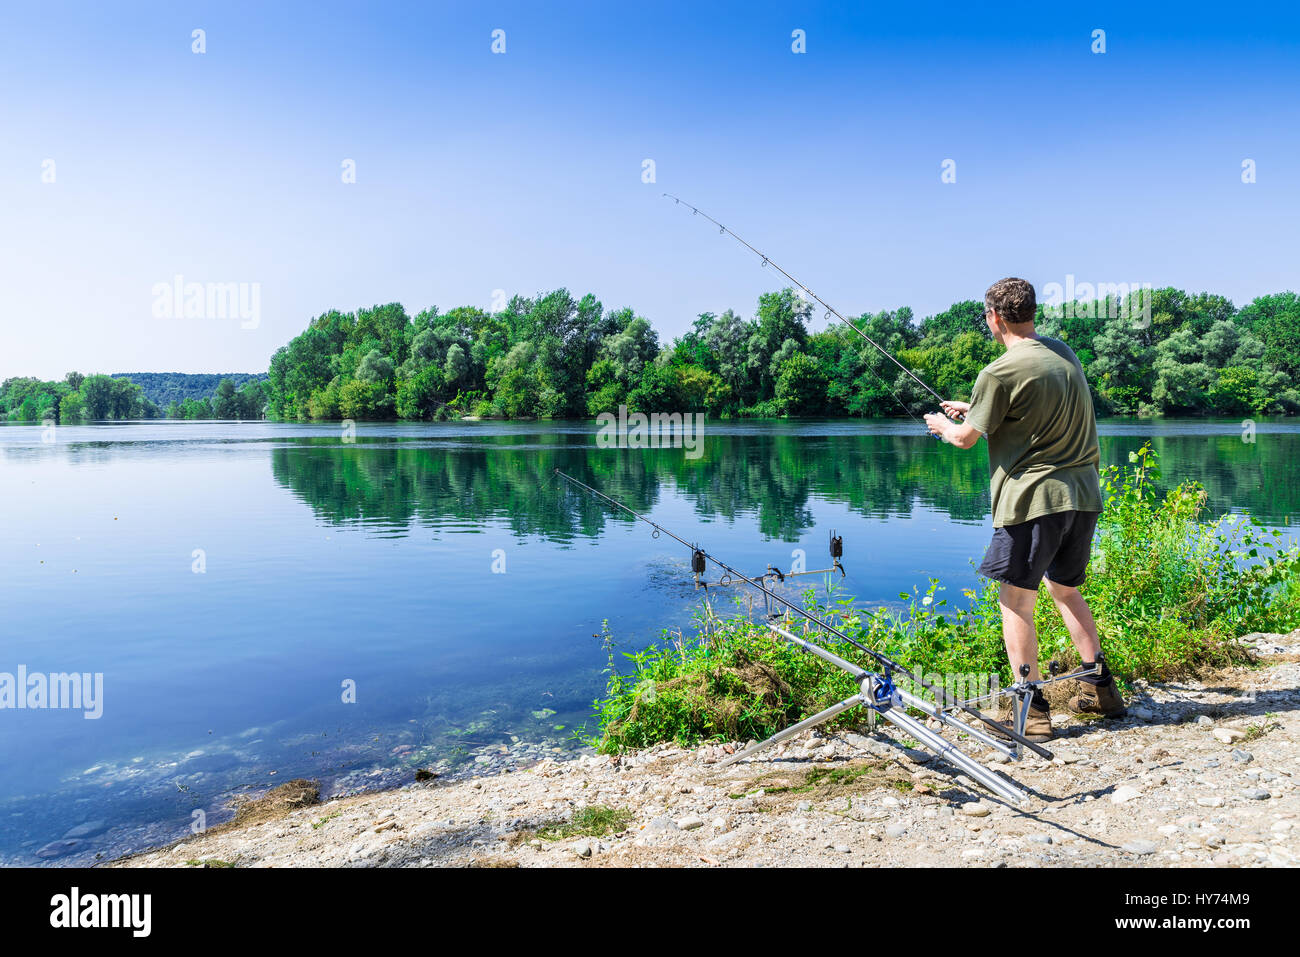 Fishing adventures, carp fishing. Angler is fishing with carpfishing technique in freshwater, in a beautiful summer - Stock Image